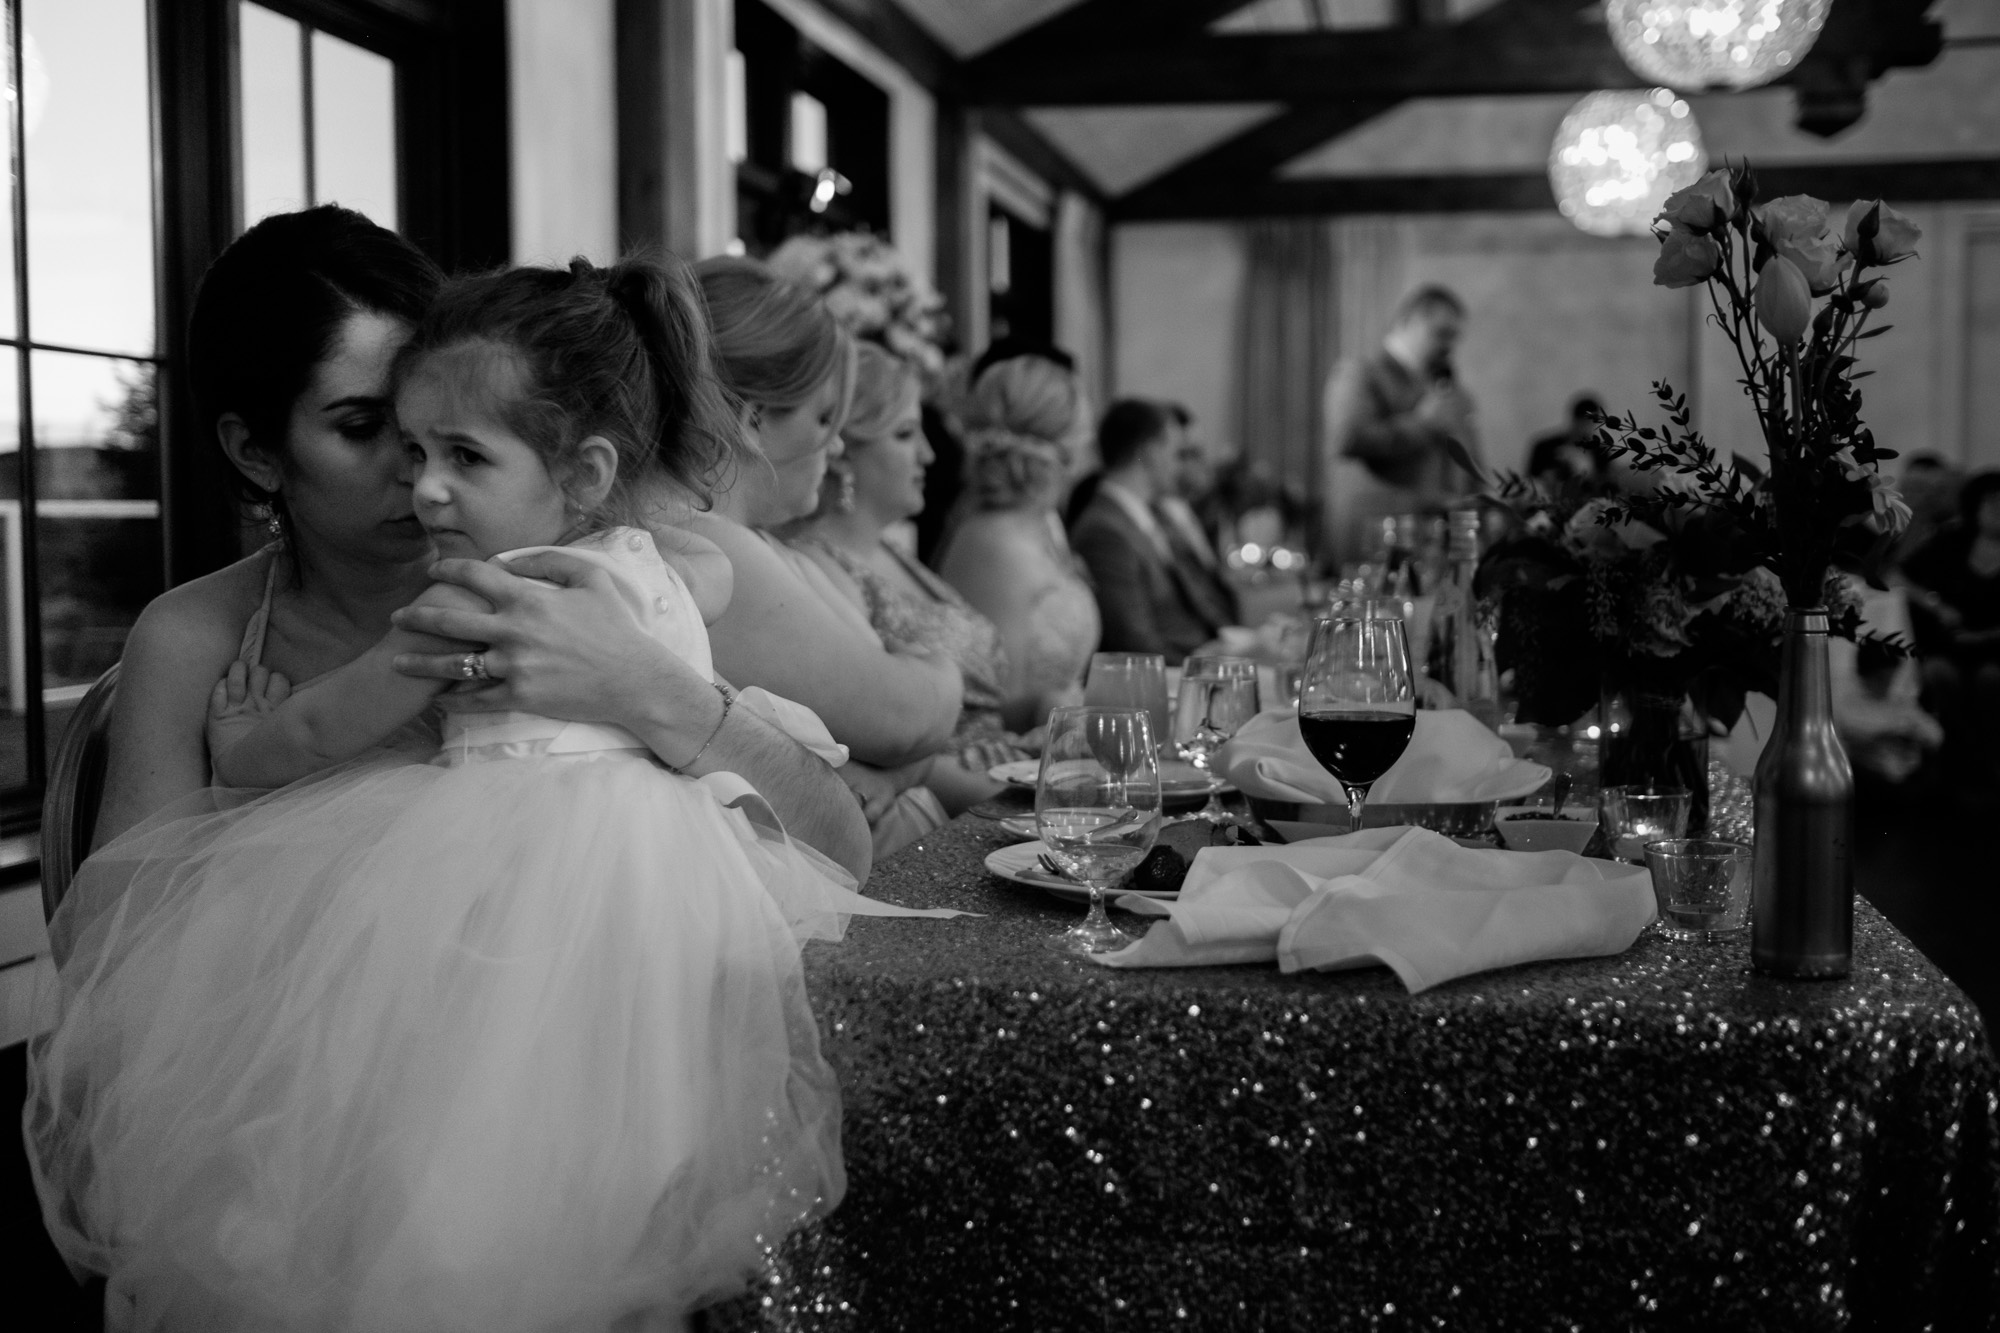 The flower girl is comforted by her mom during the reception at Sarah + Rob's wedding at Whistle Bear in Cambridge, Ontario.